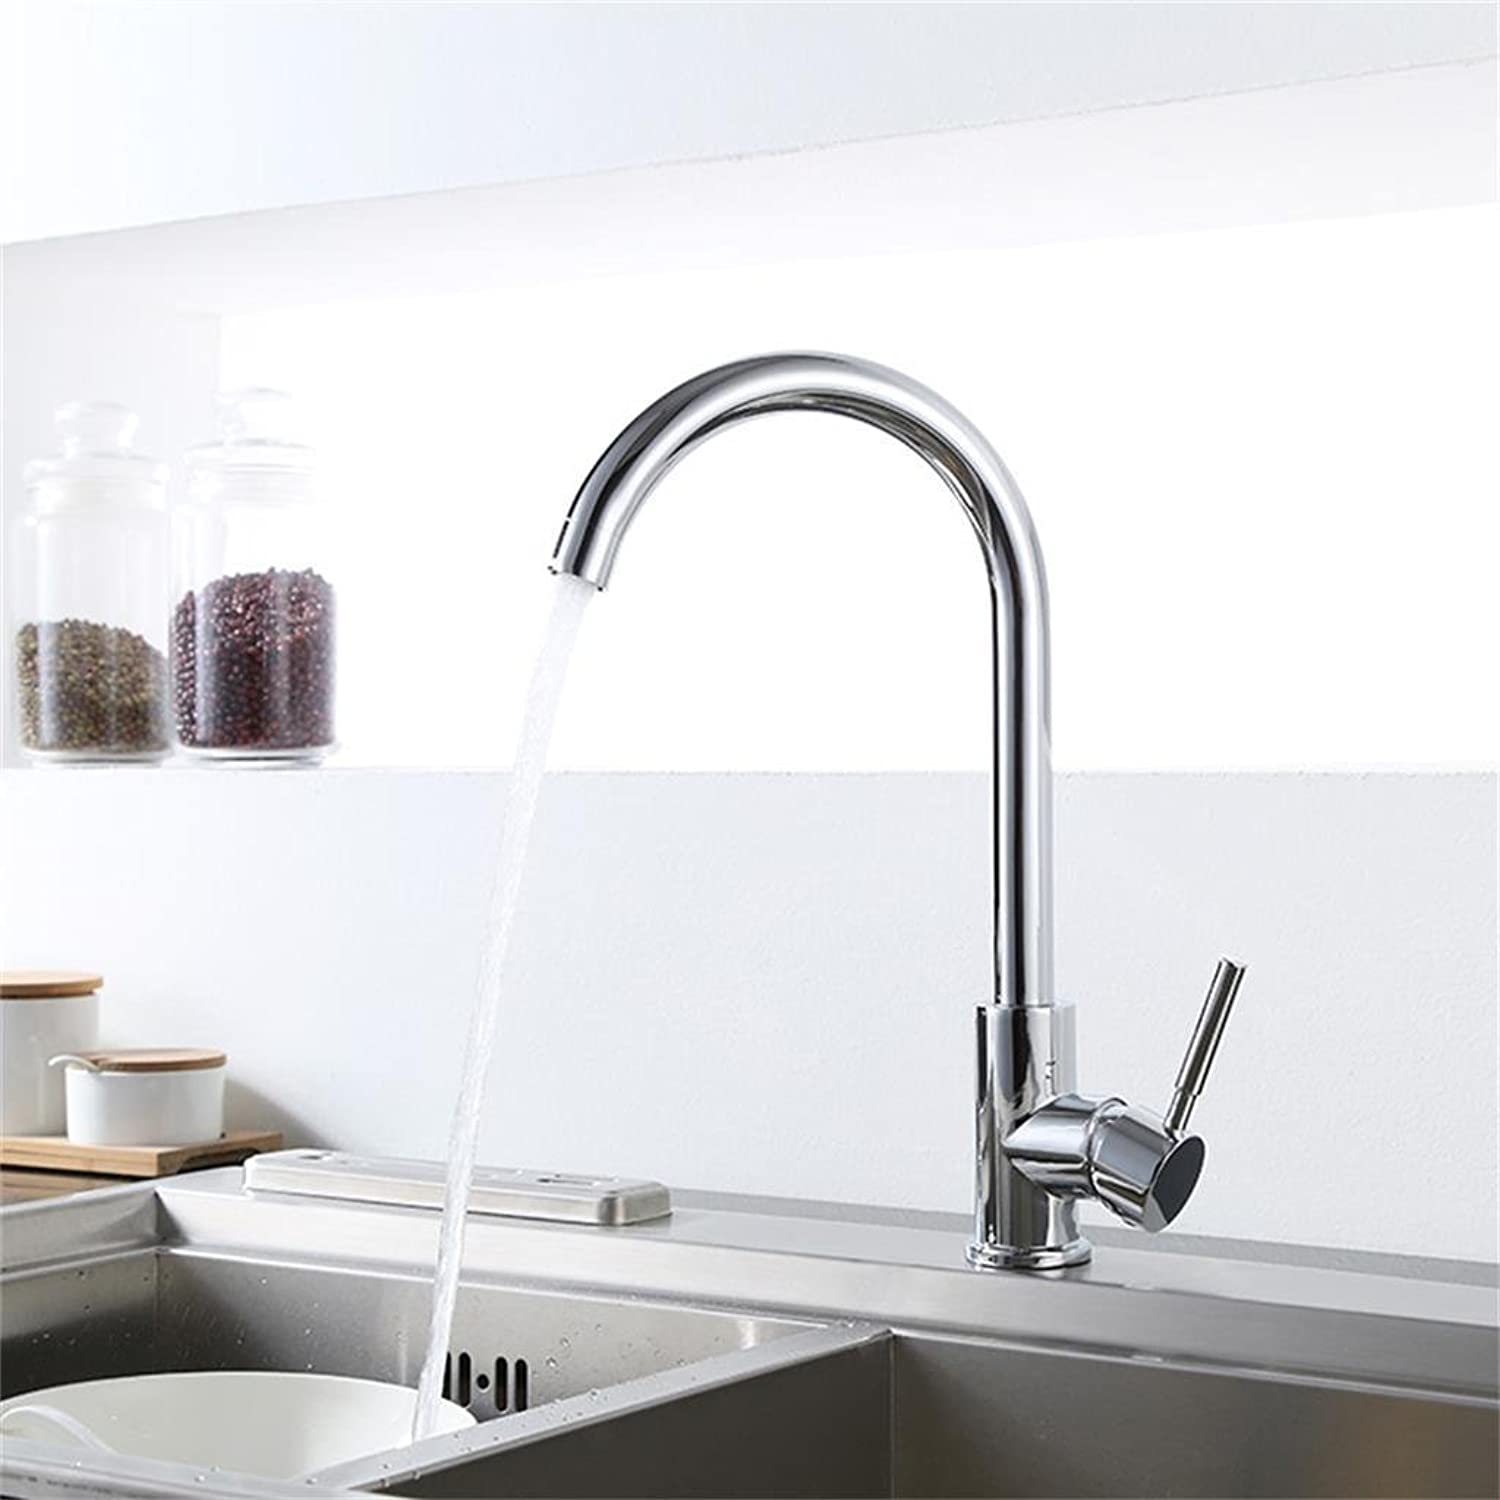 Deck Mounted Single Handle One Hole with Chrome Finish Kitchen faucet